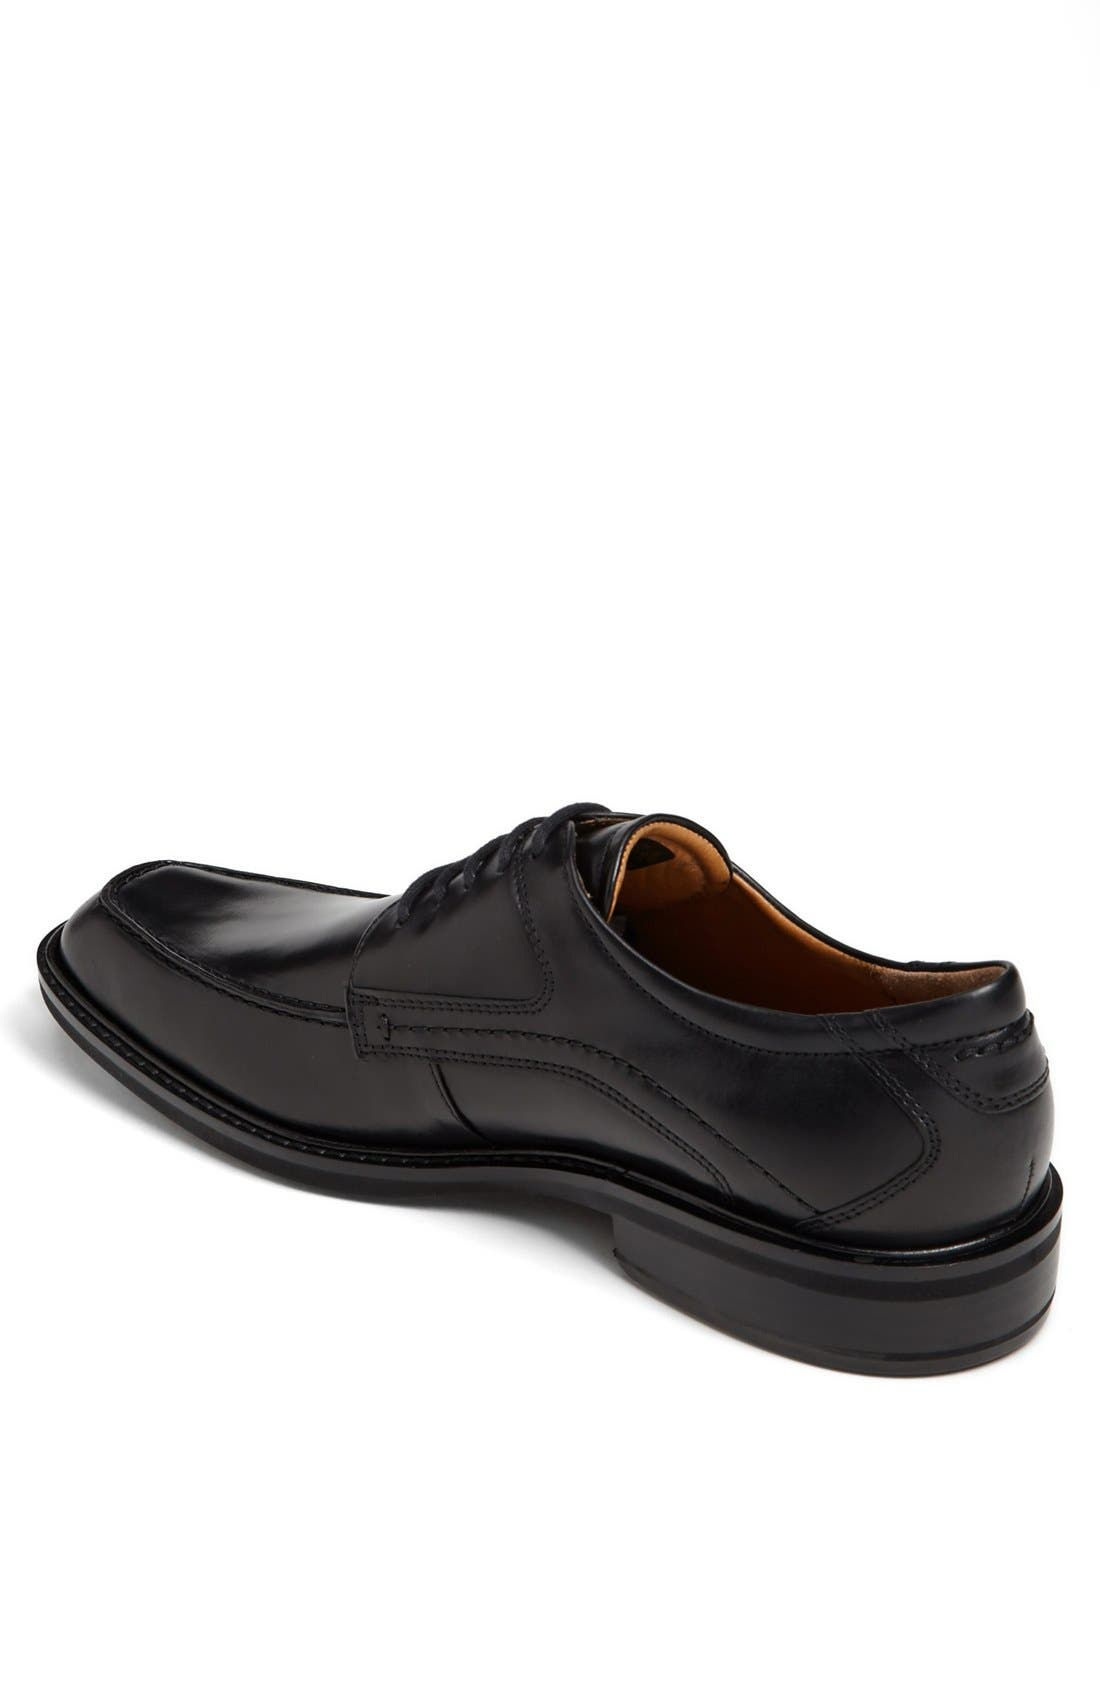 Alternate Image 2  - ECCO 'Windsor' Apron Toe Derby (Men)